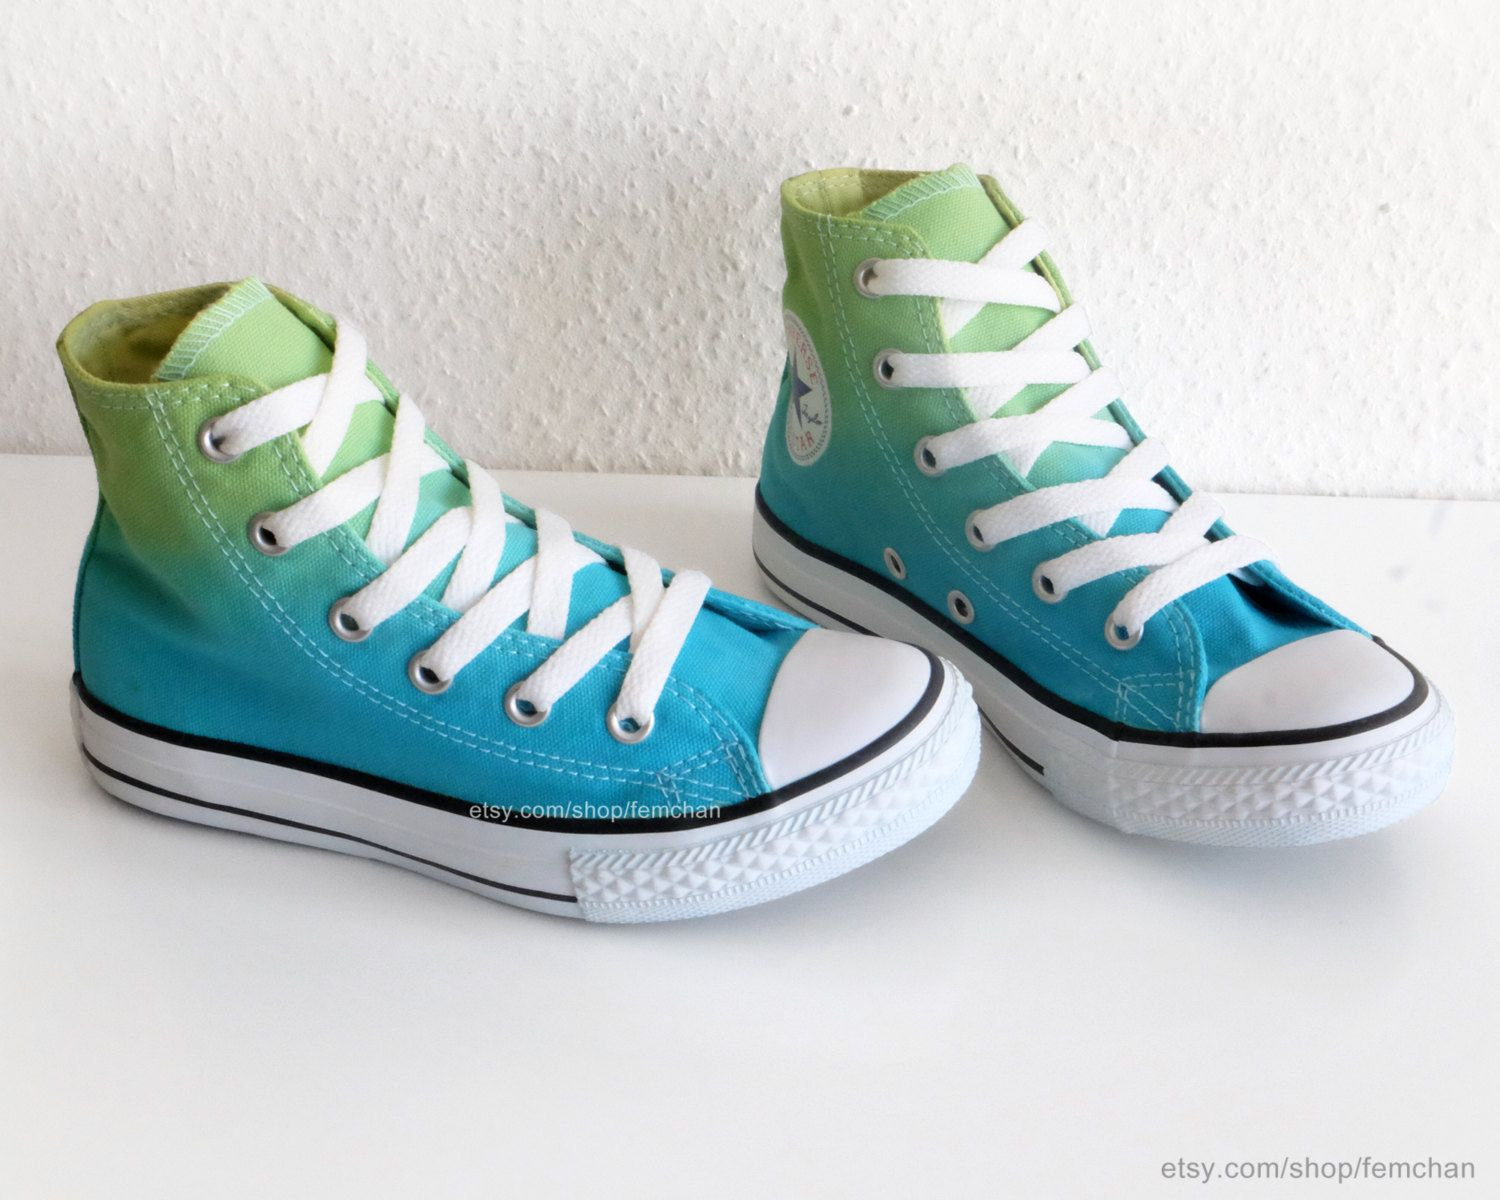 dd395b61bc7397 ... authentic brand new converse all stars transformed with a fresh spring  green to clear turquoise ombré